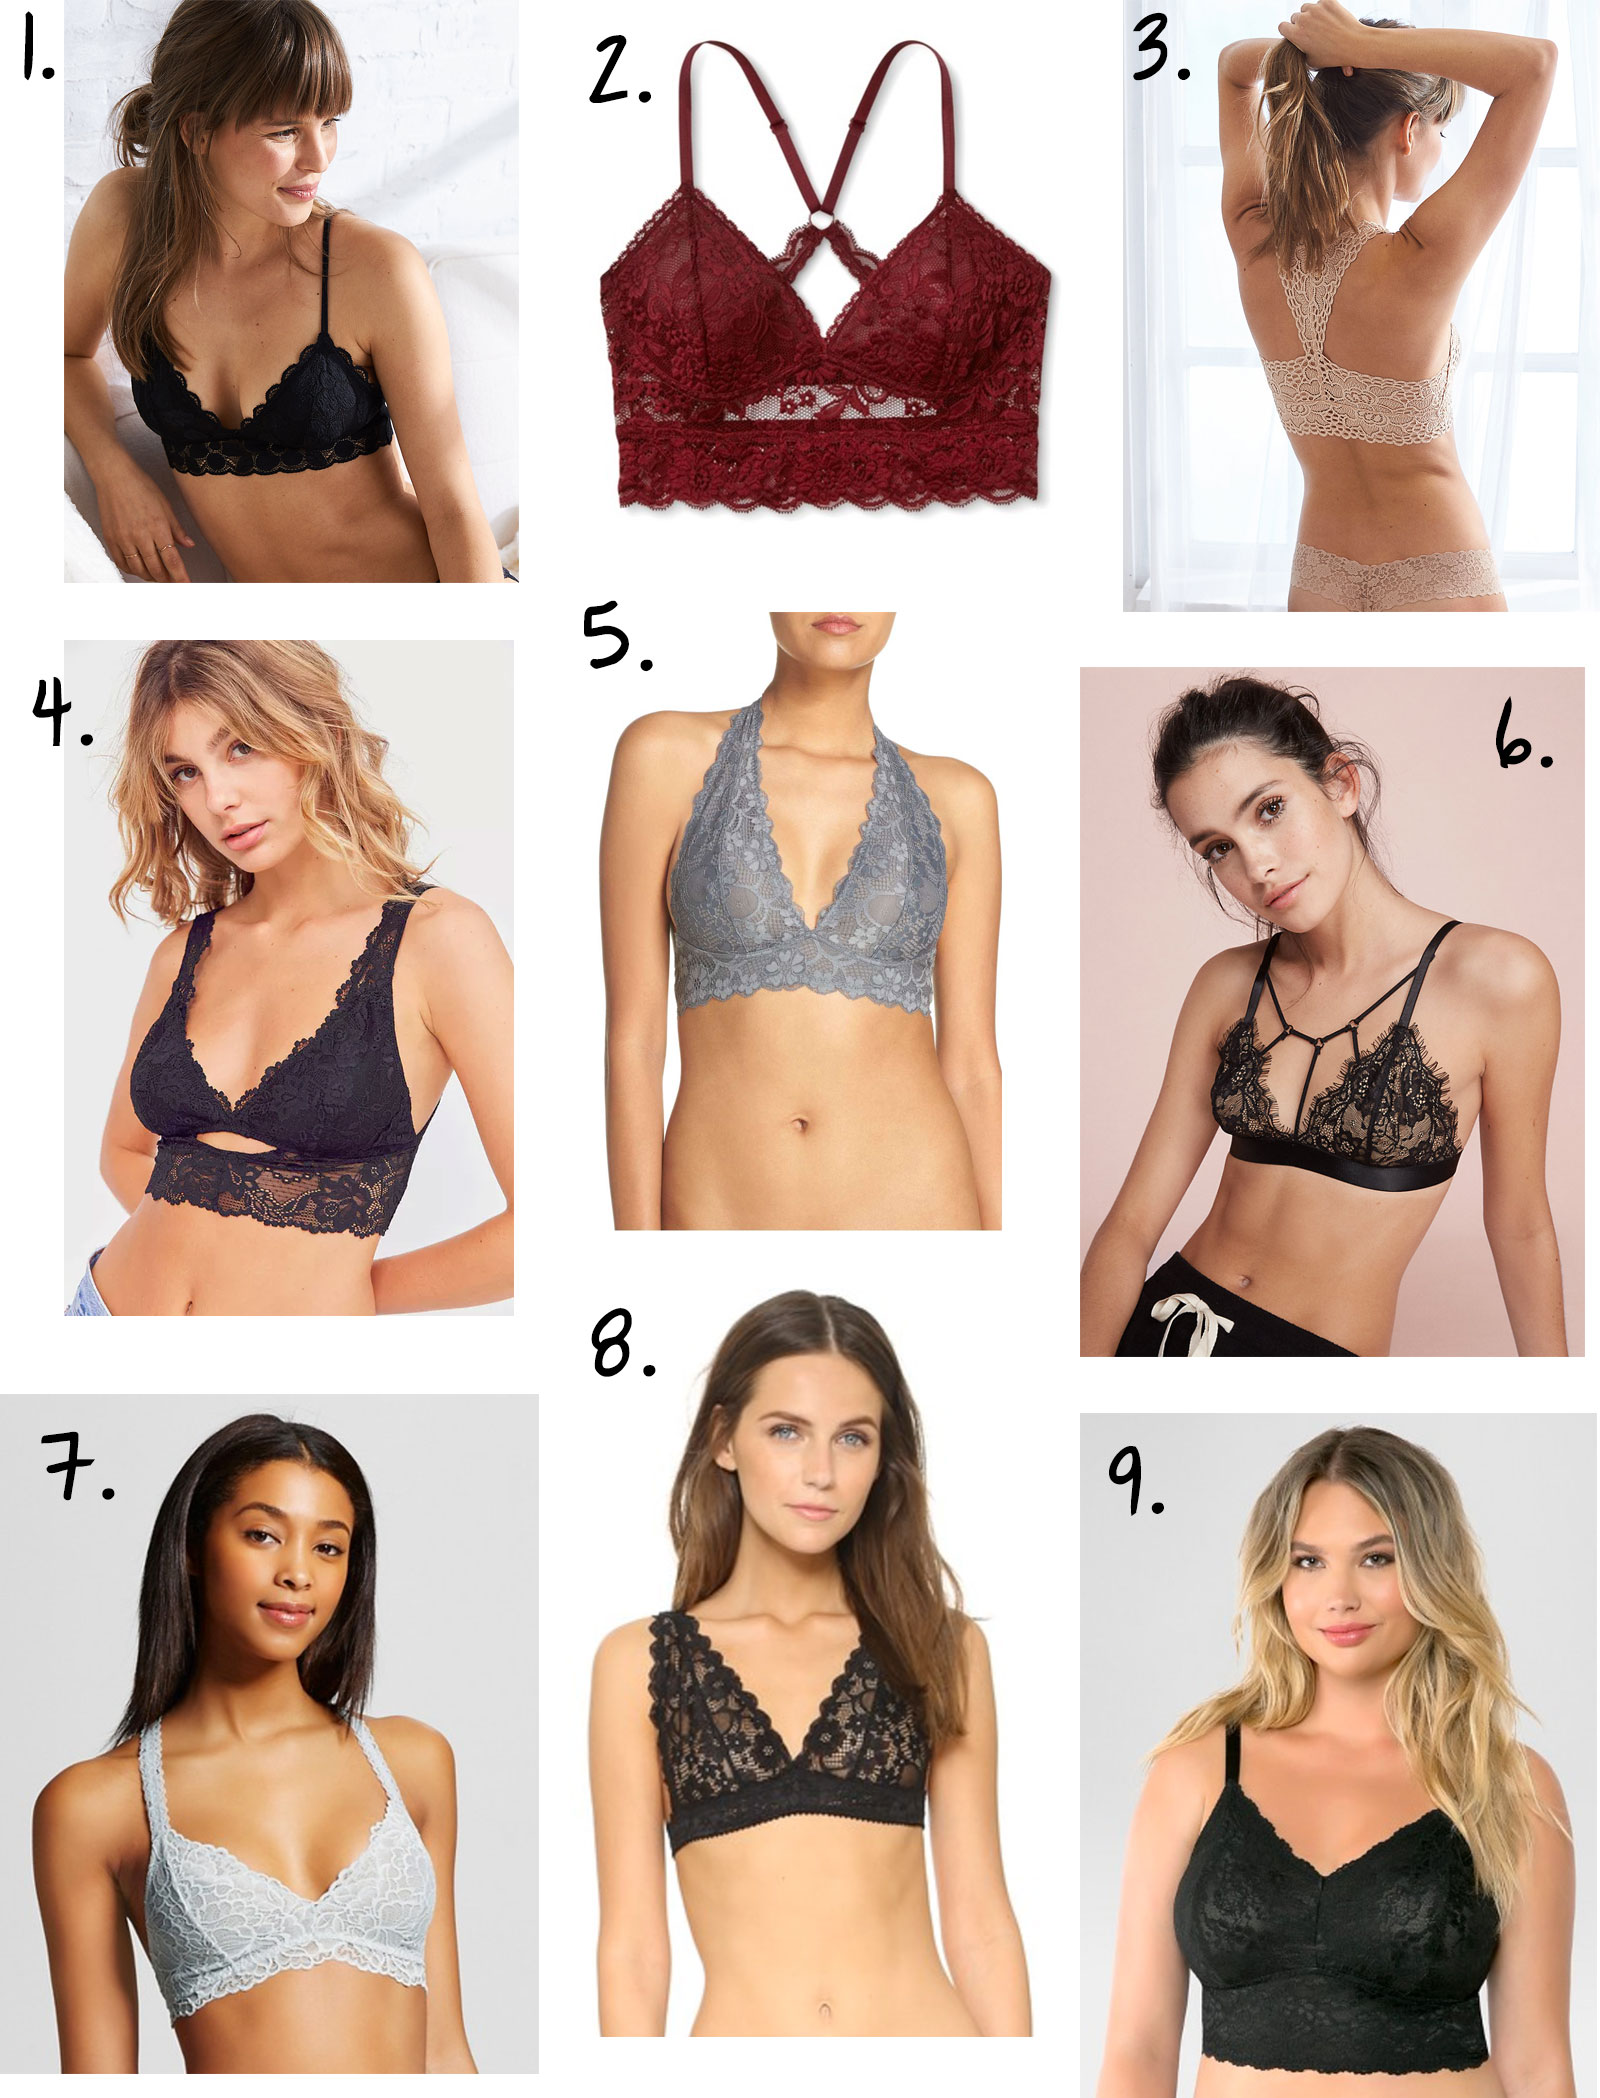 cabdcff5323 9 Pretty Bralettes to Step Up Your Layering Game - The Budget Babe ...